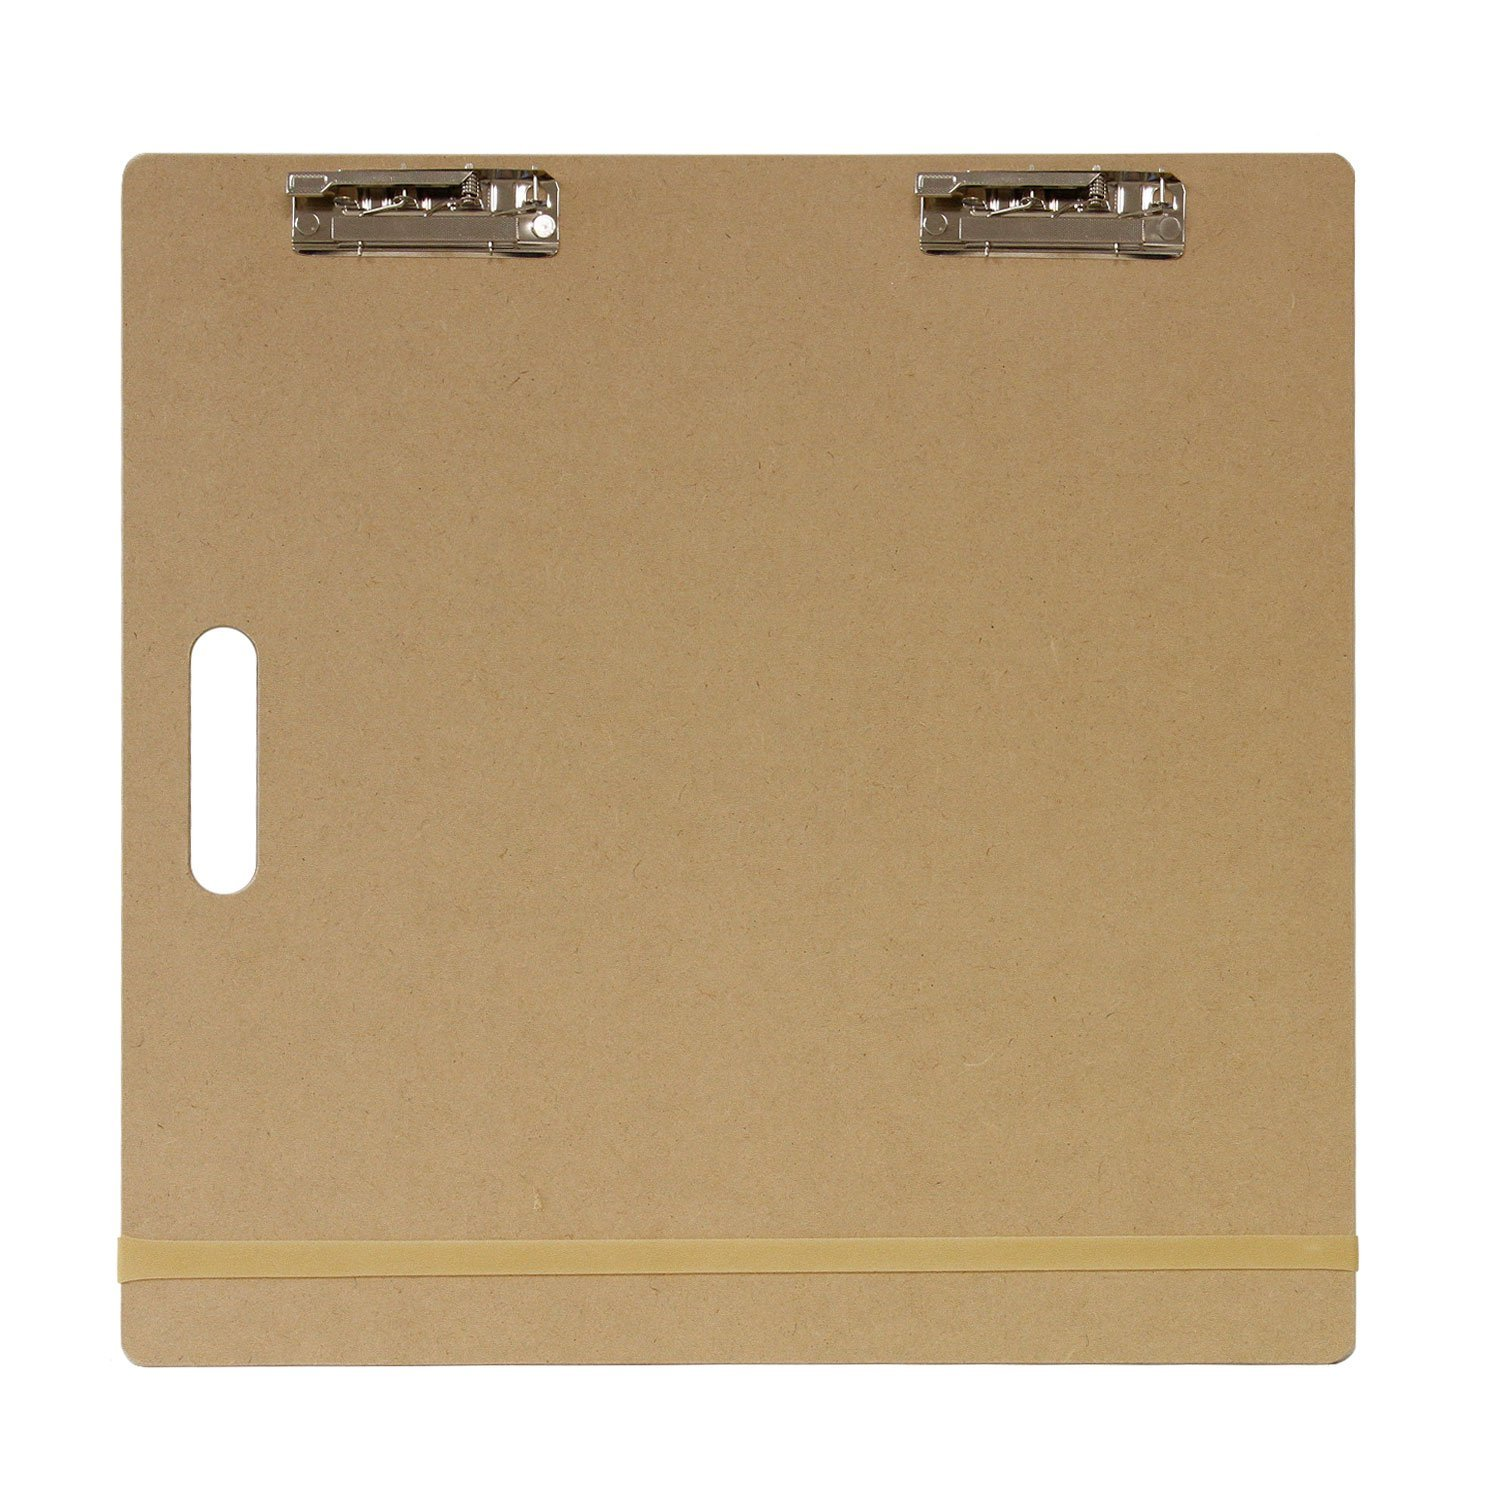 US Art Supply Artist Sketch Tote Board - Great for Classroom, Studio or Field Use (18''x18'') by US Art Supply